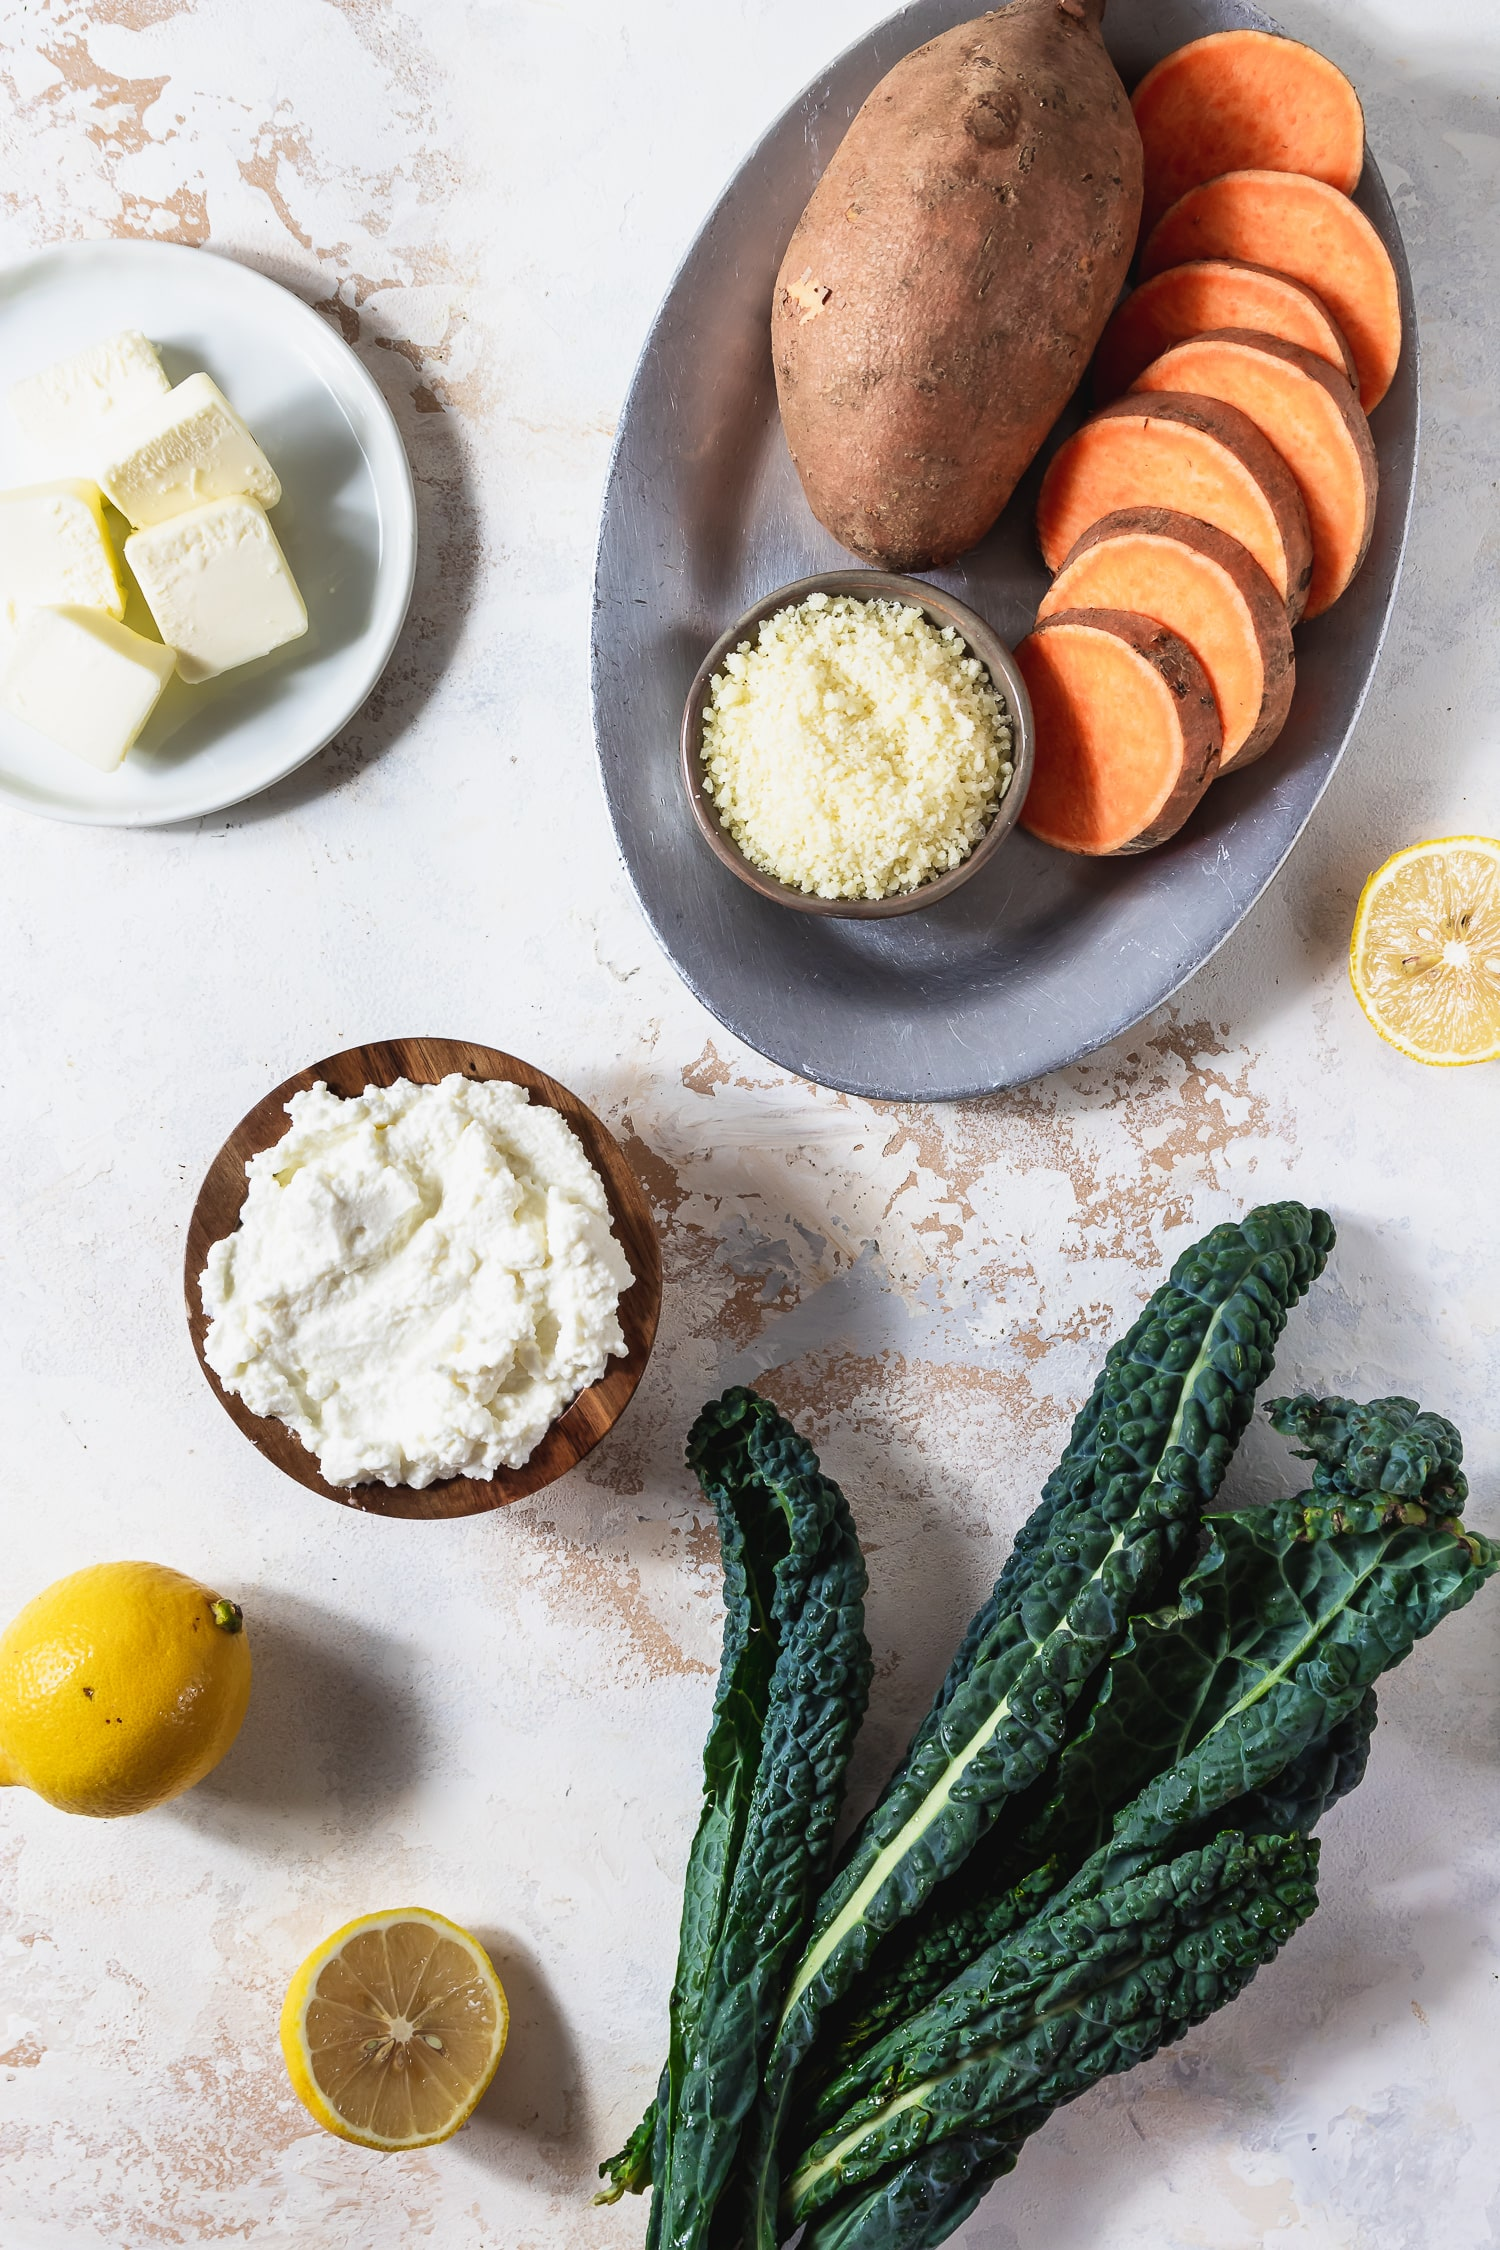 ingredients for sweet potato gnocchi with kale and brown butter